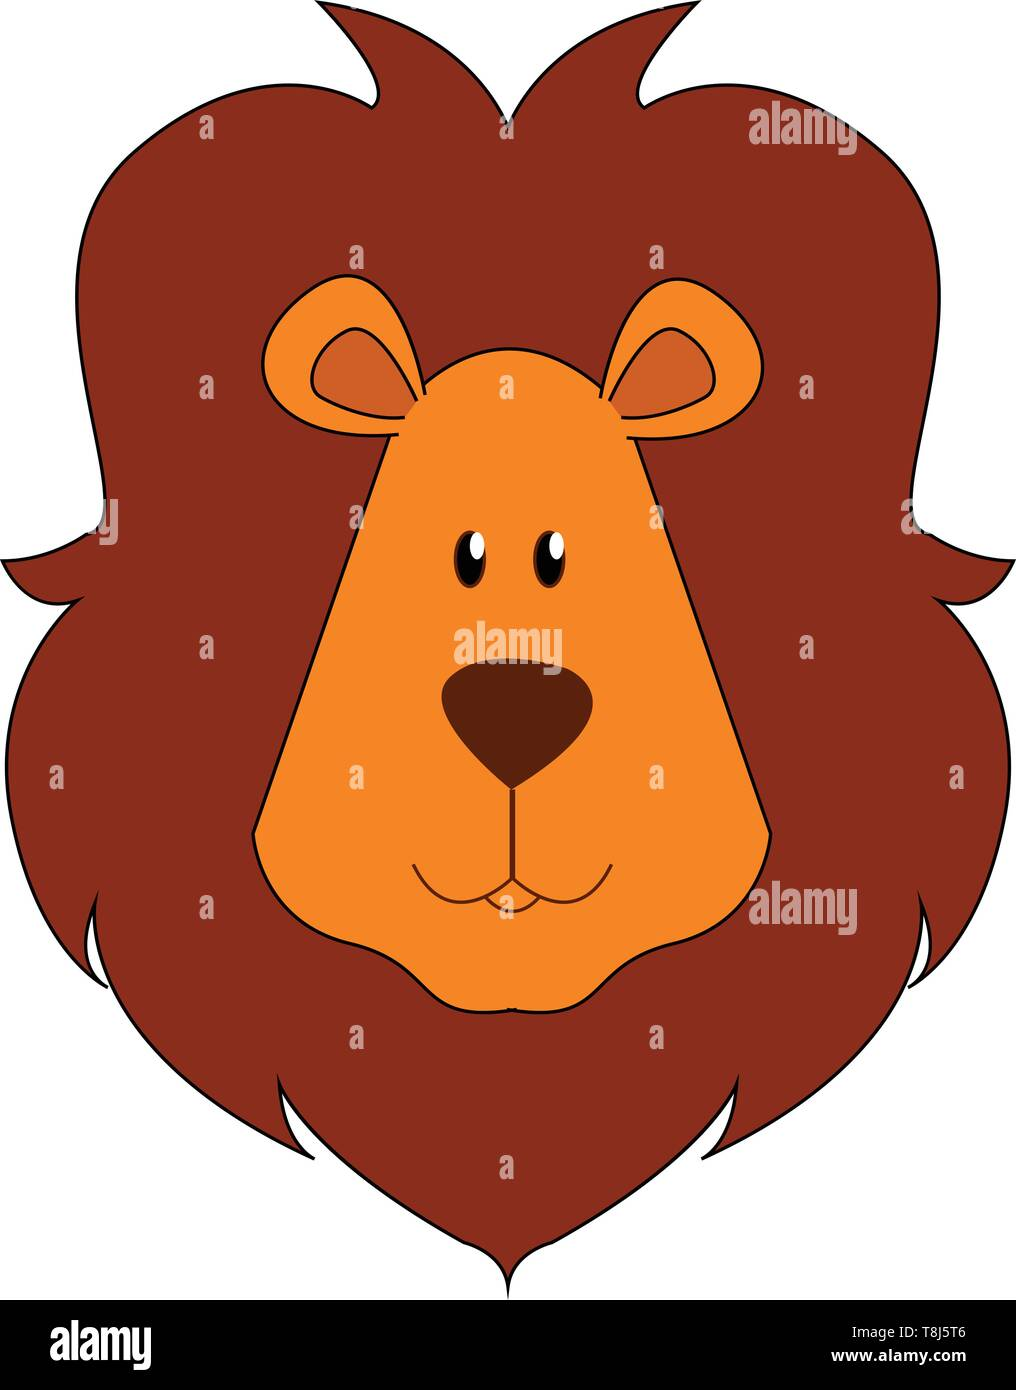 A face of a brown lion with a short, rounded head, oval-shaped ears, and dark-brown mane covering the head and with eyes rolled up looks mighty, vecto - Stock Vector